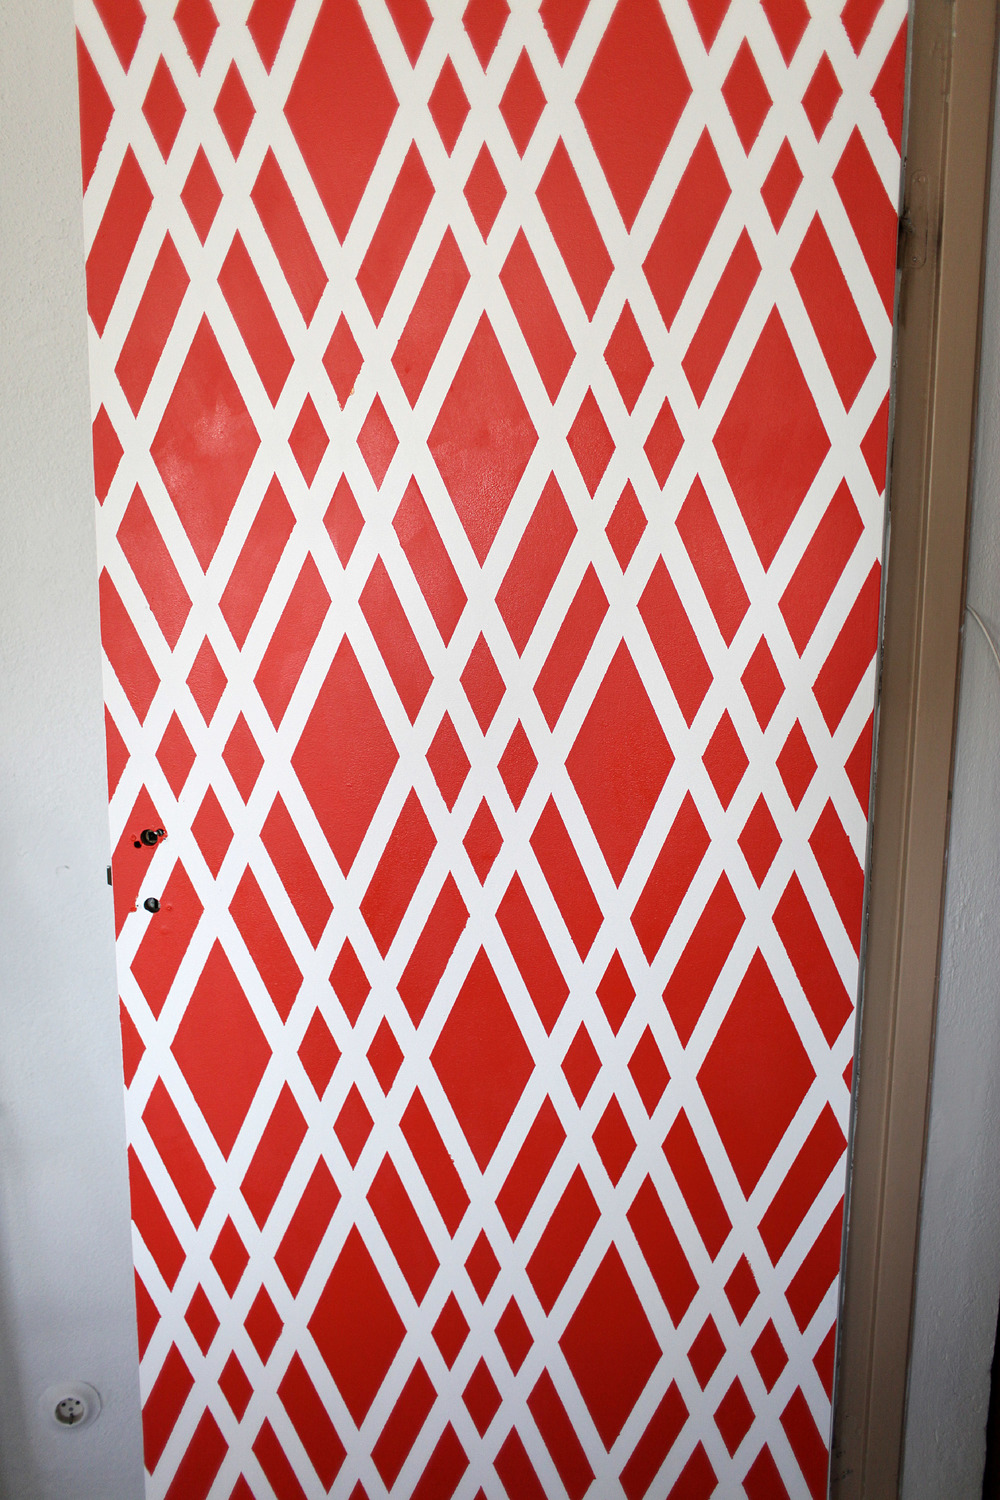 Anotherblogg_Anna_Lidström_DIY_Polka_Painted_Door7.JPG